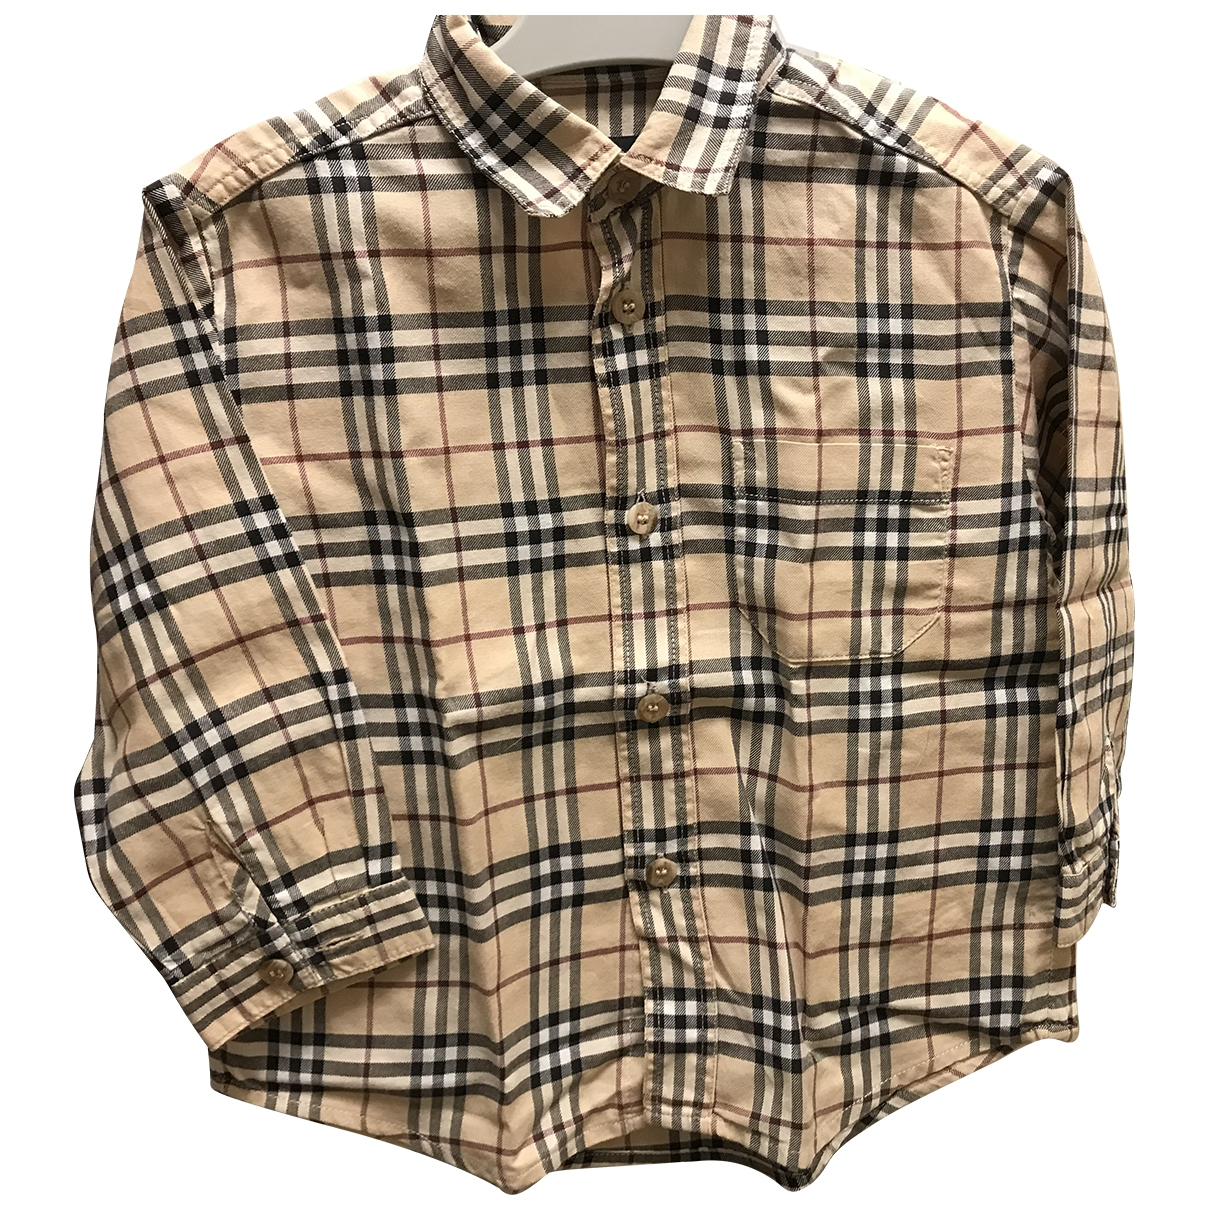 Burberry \N Beige Cotton  top for Kids 12 months - up to 74cm FR